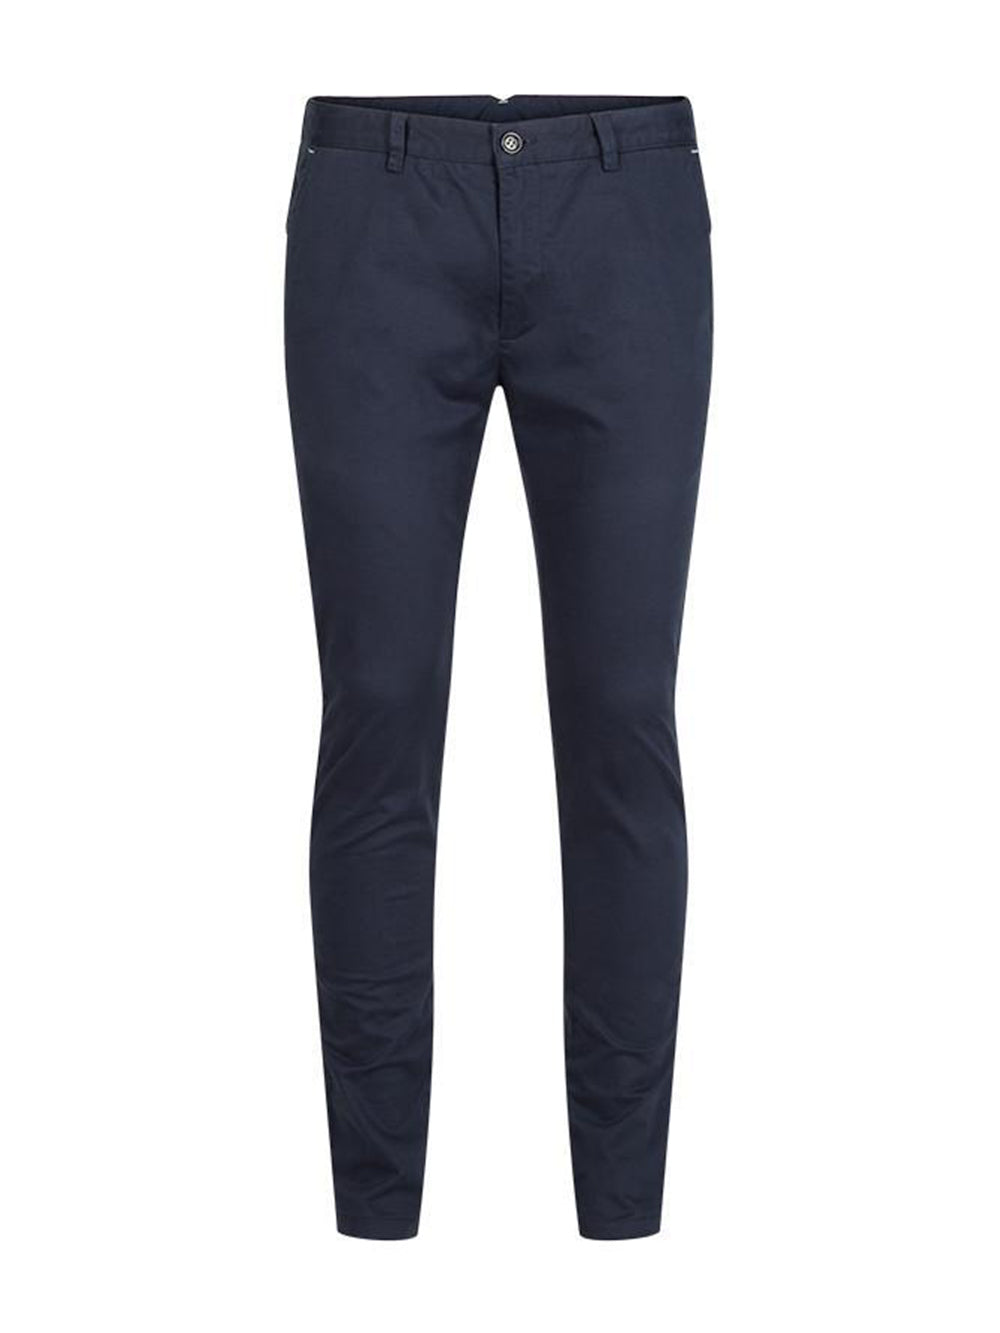 Rainford Chinos Bukse - Navy